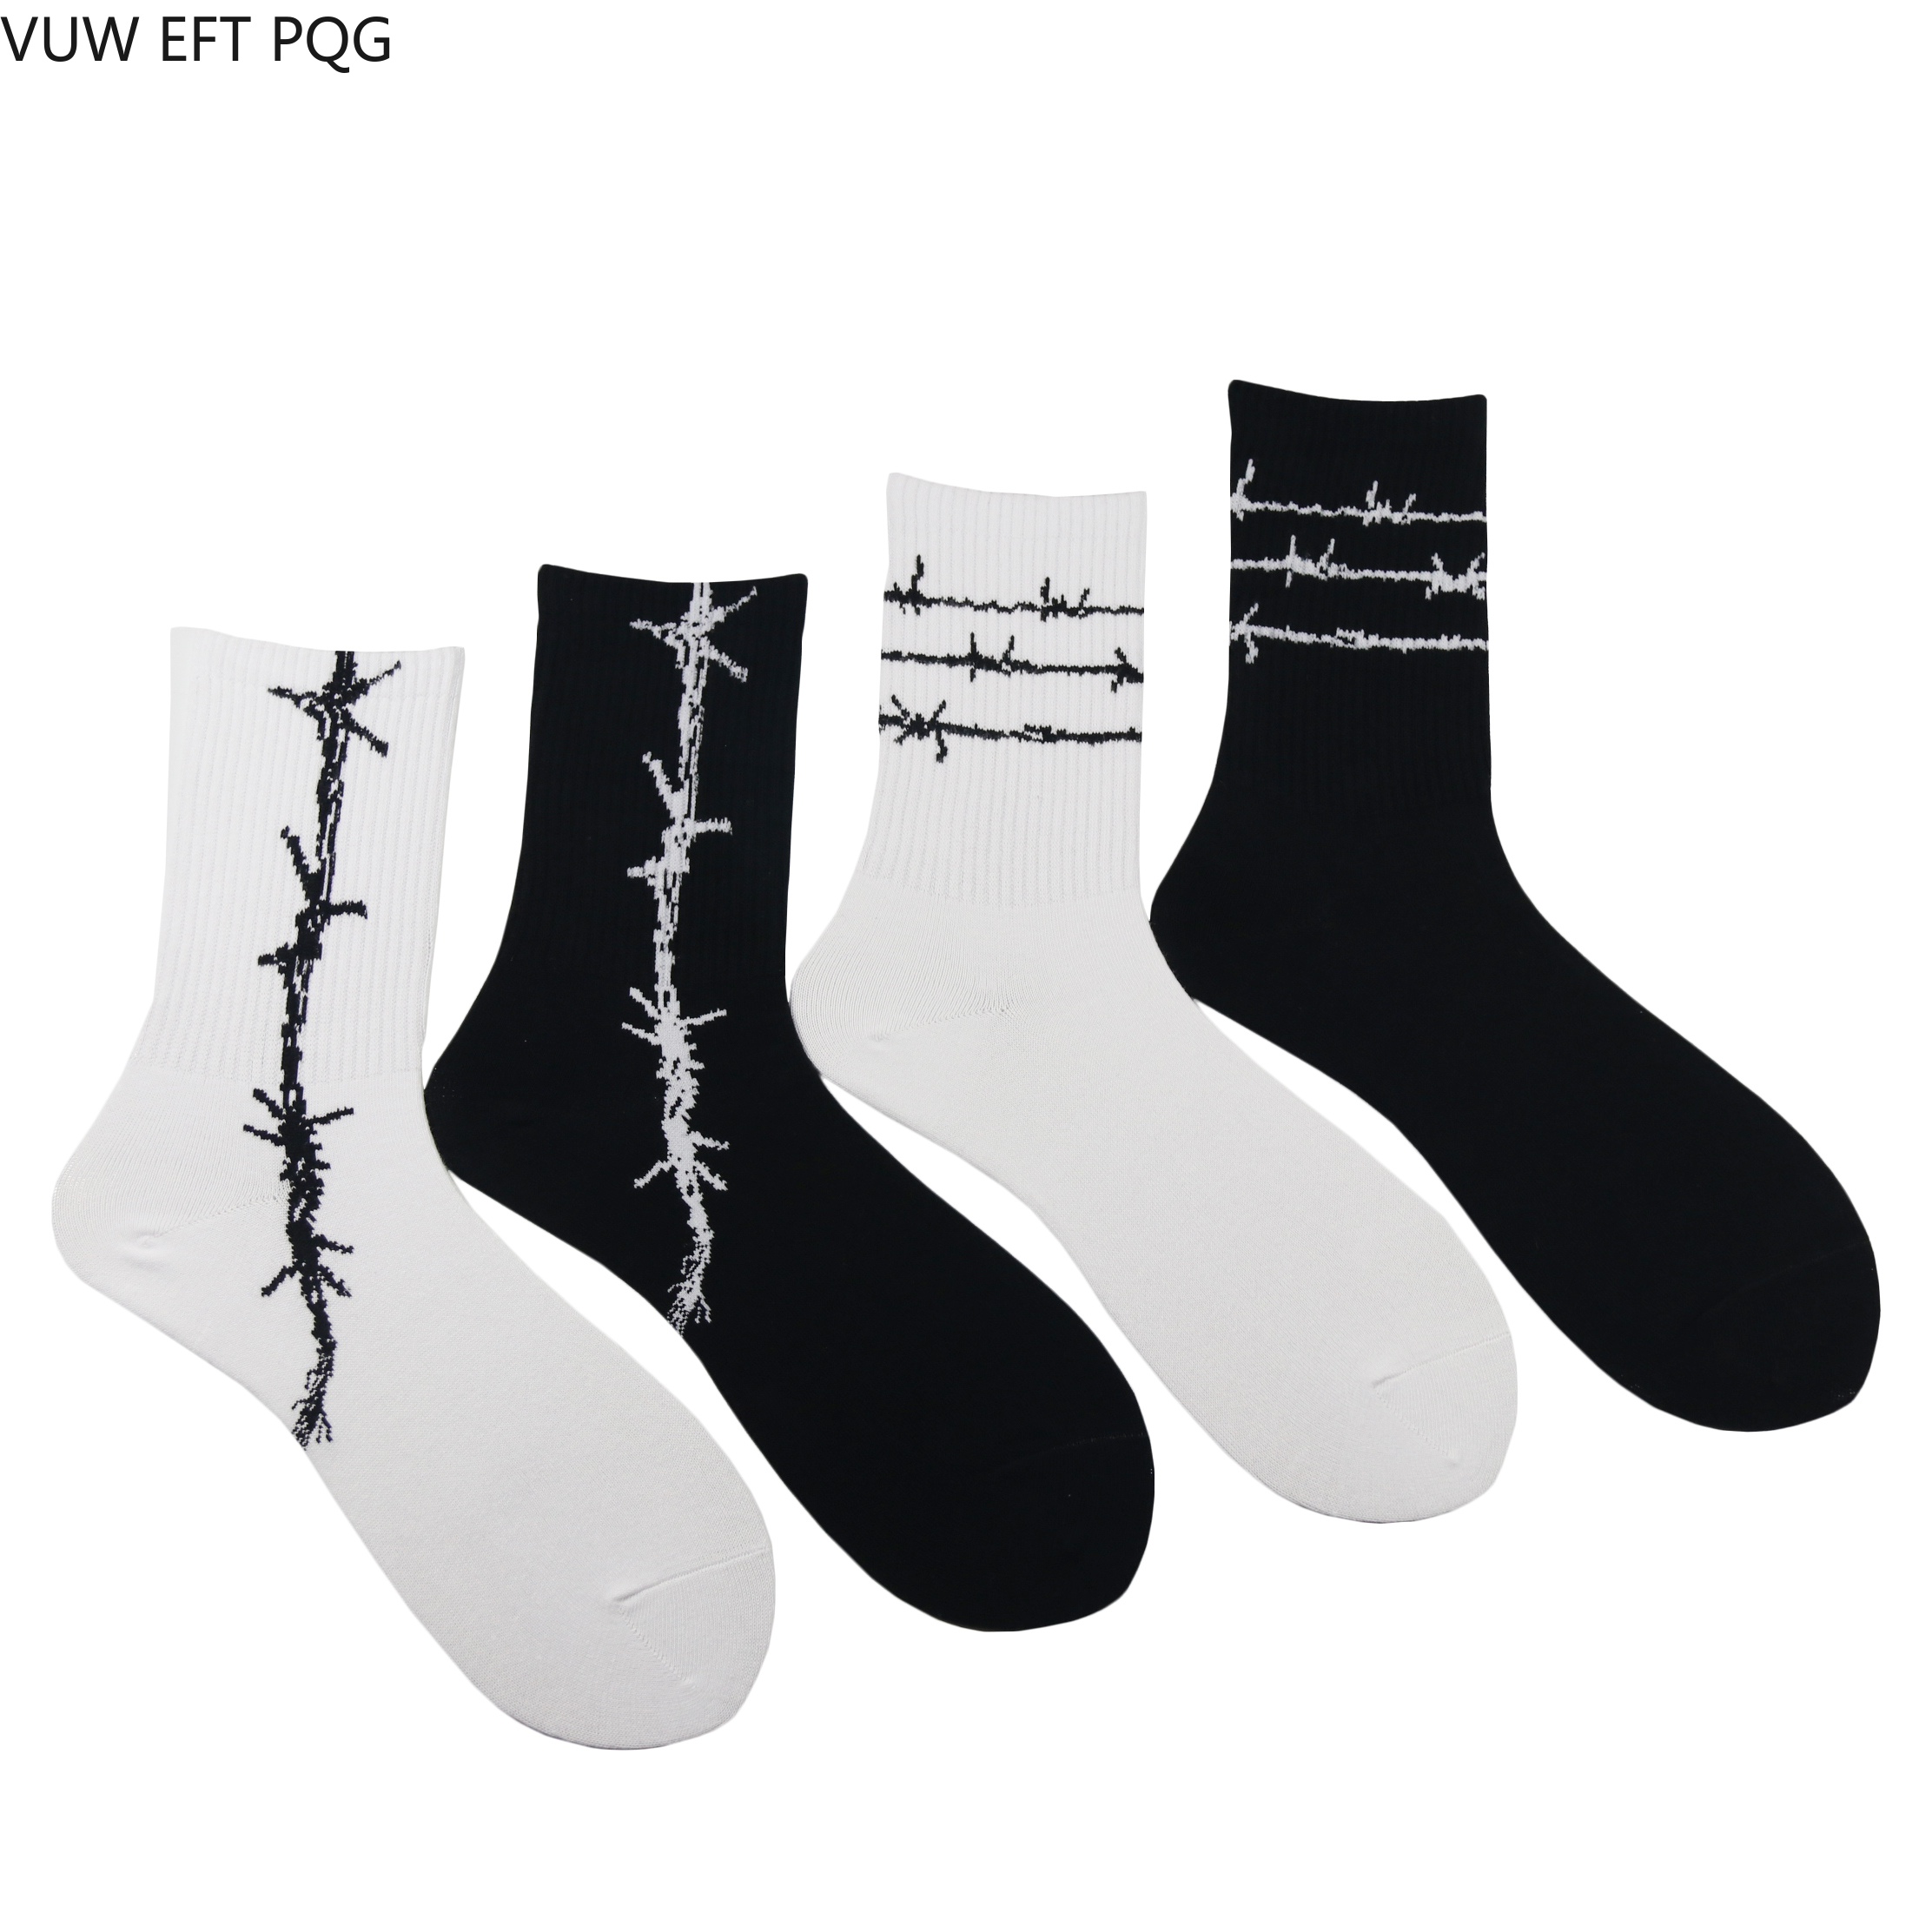 4Pcs/Lot Men And Women Socks Original Design Barbed Wire Pattern Trend Fashion Street Hip Hop Style Cool Unique Socks